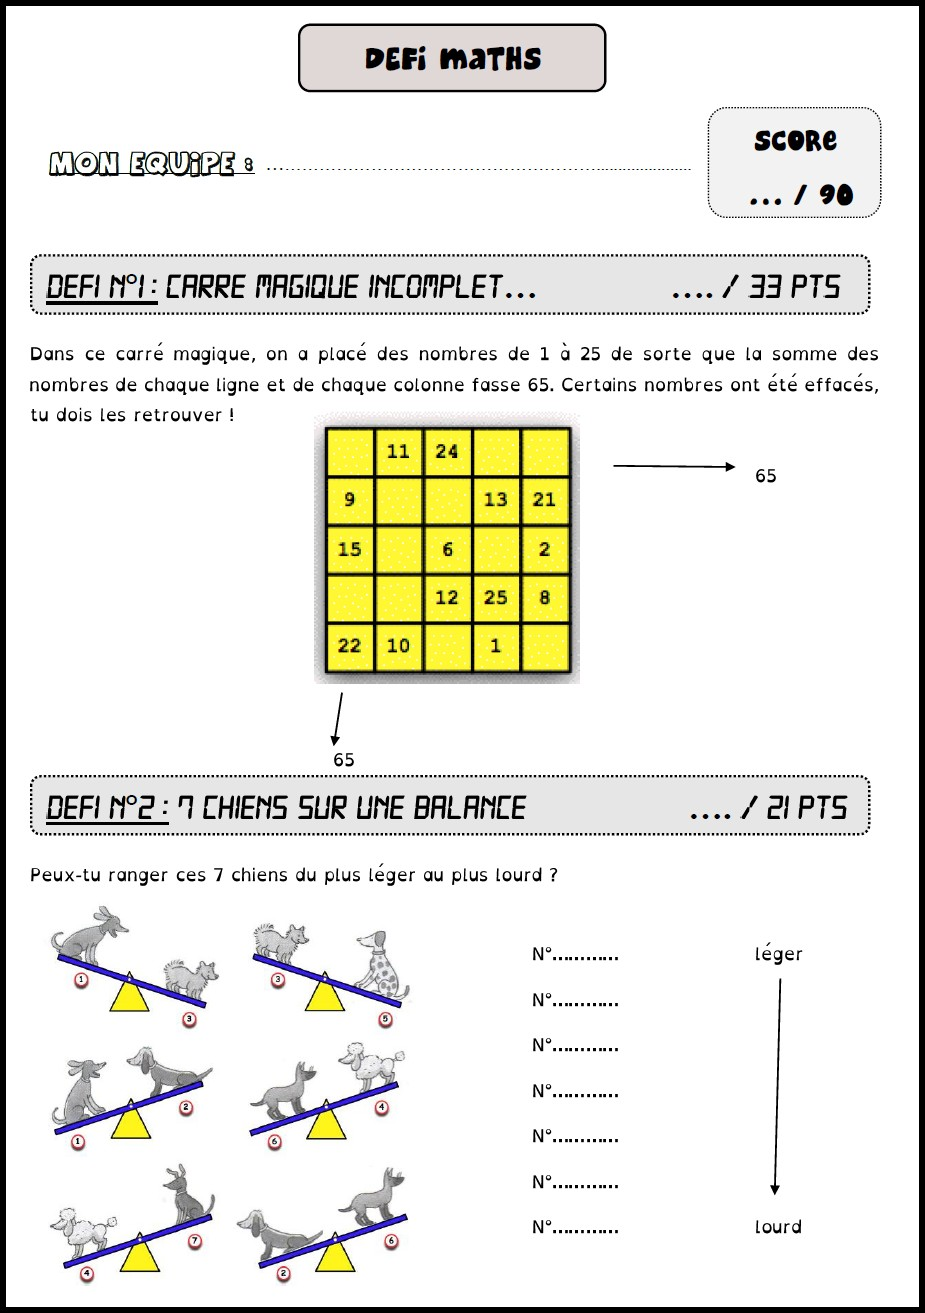 image défi maths 10